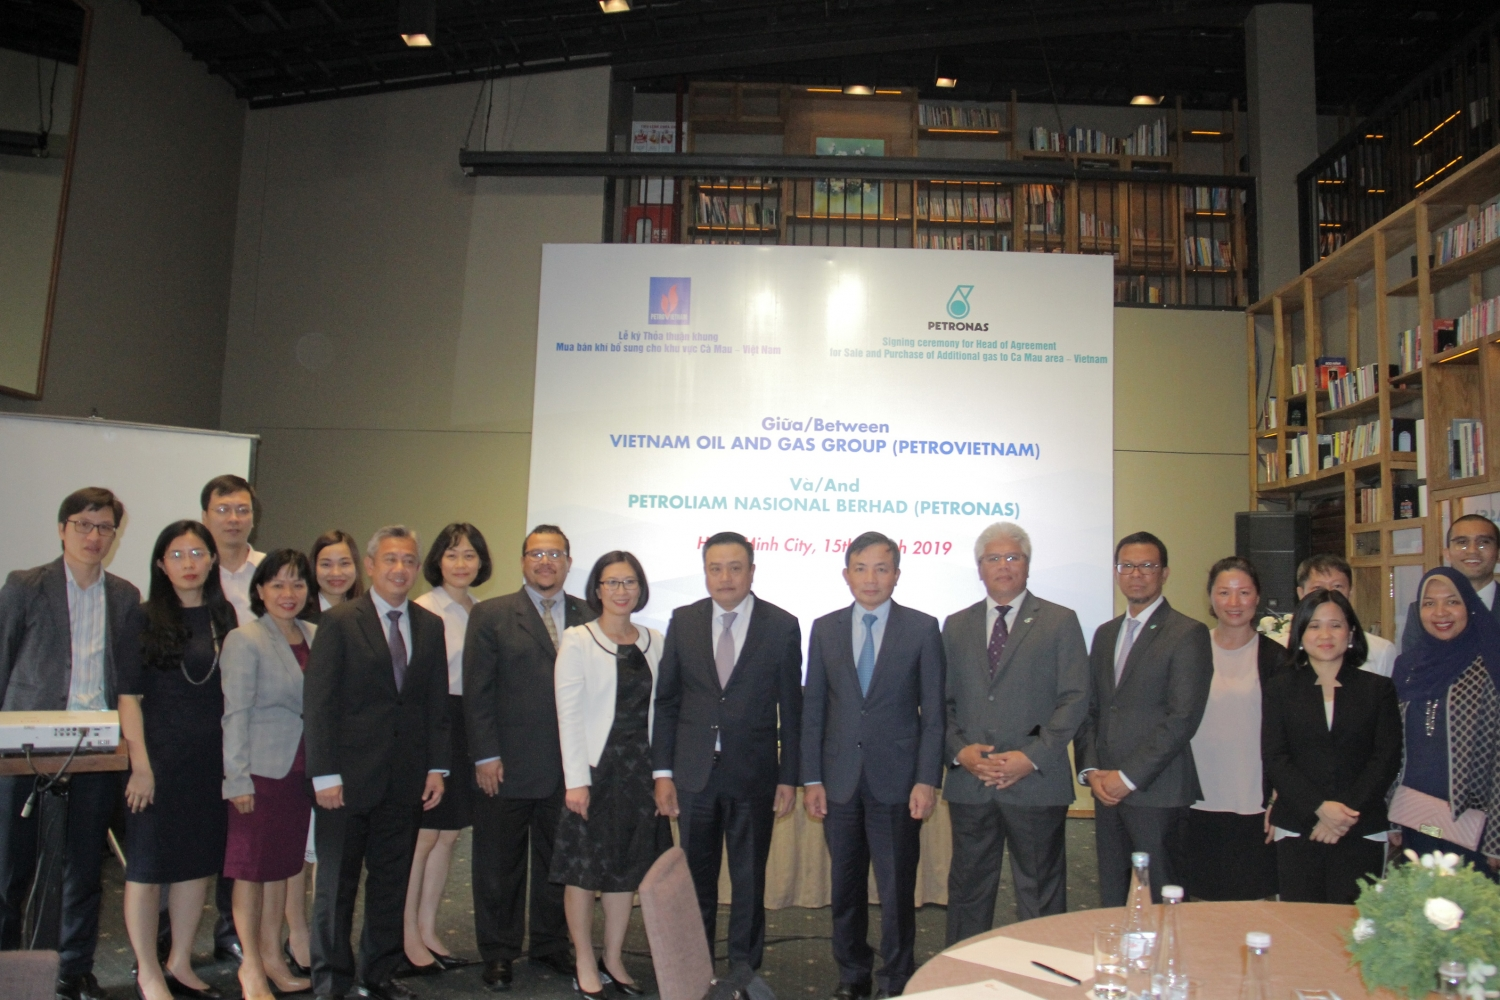 The signing ceremony marks a new development in Petrovietnam and Petronas relations